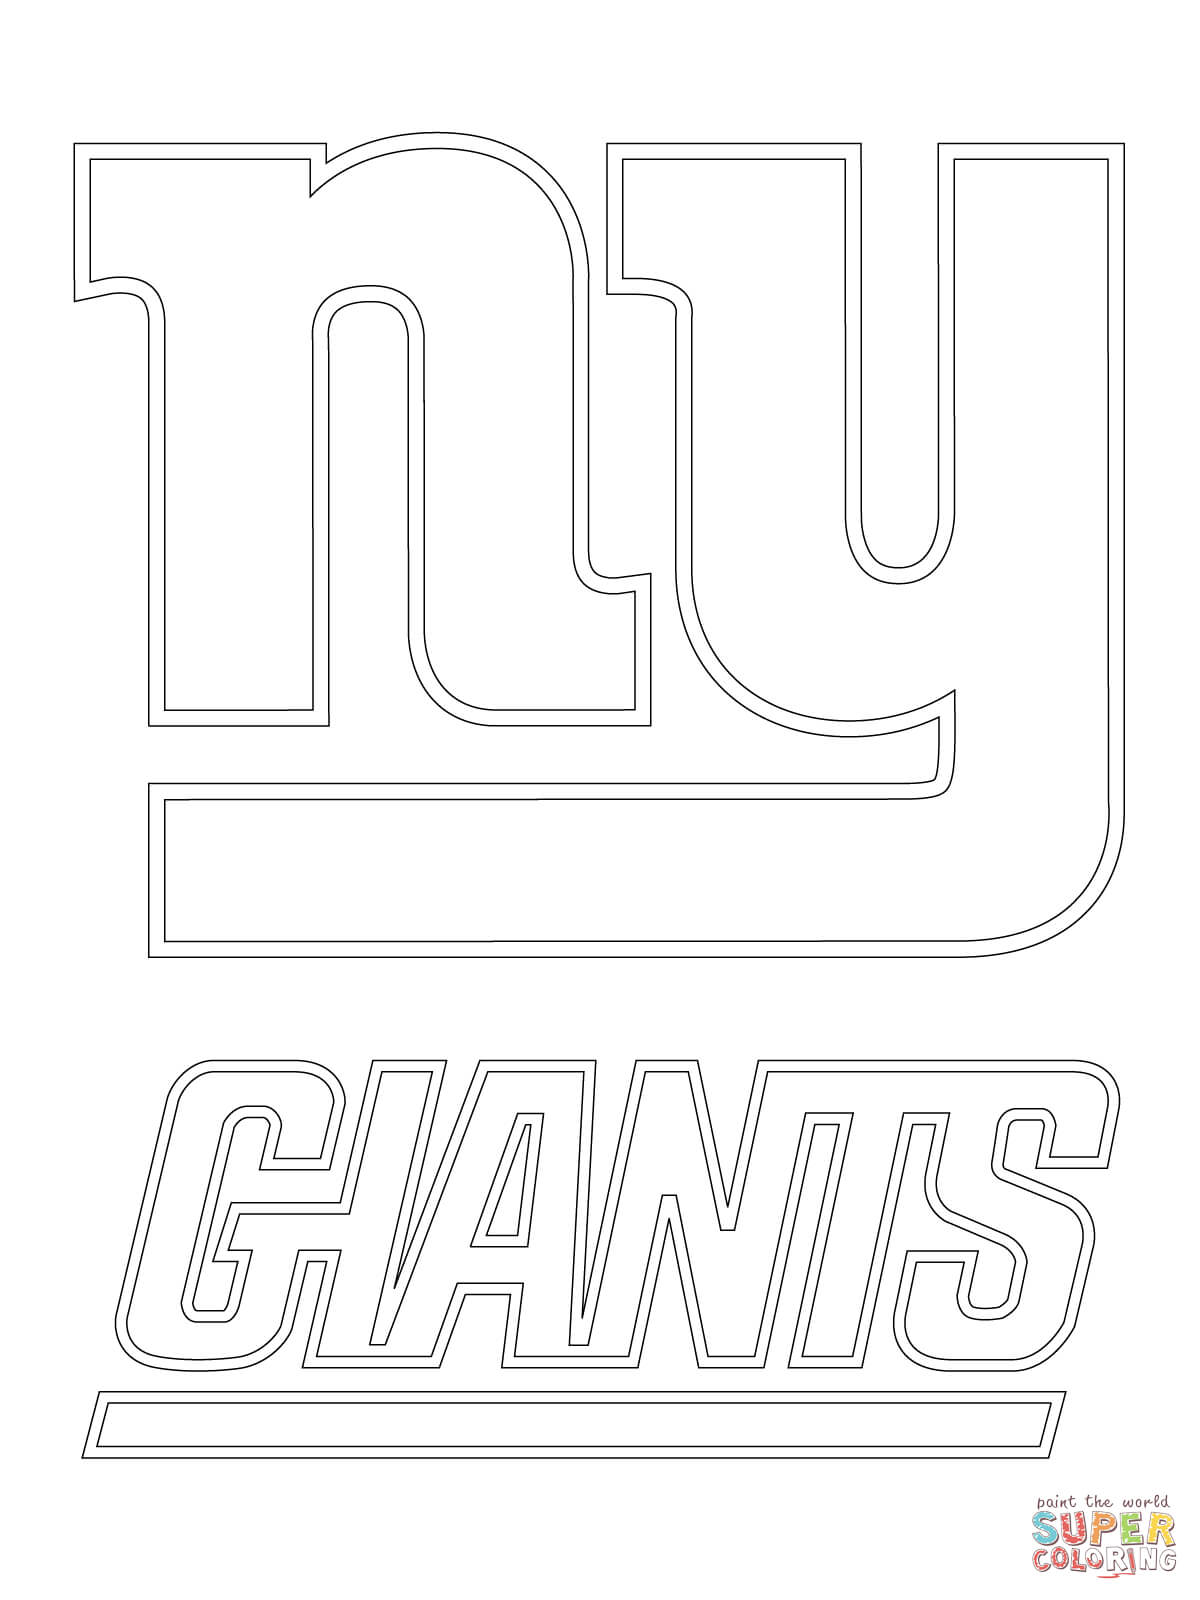 giants coloring pages giant coloring pages to download and print for free giants pages coloring